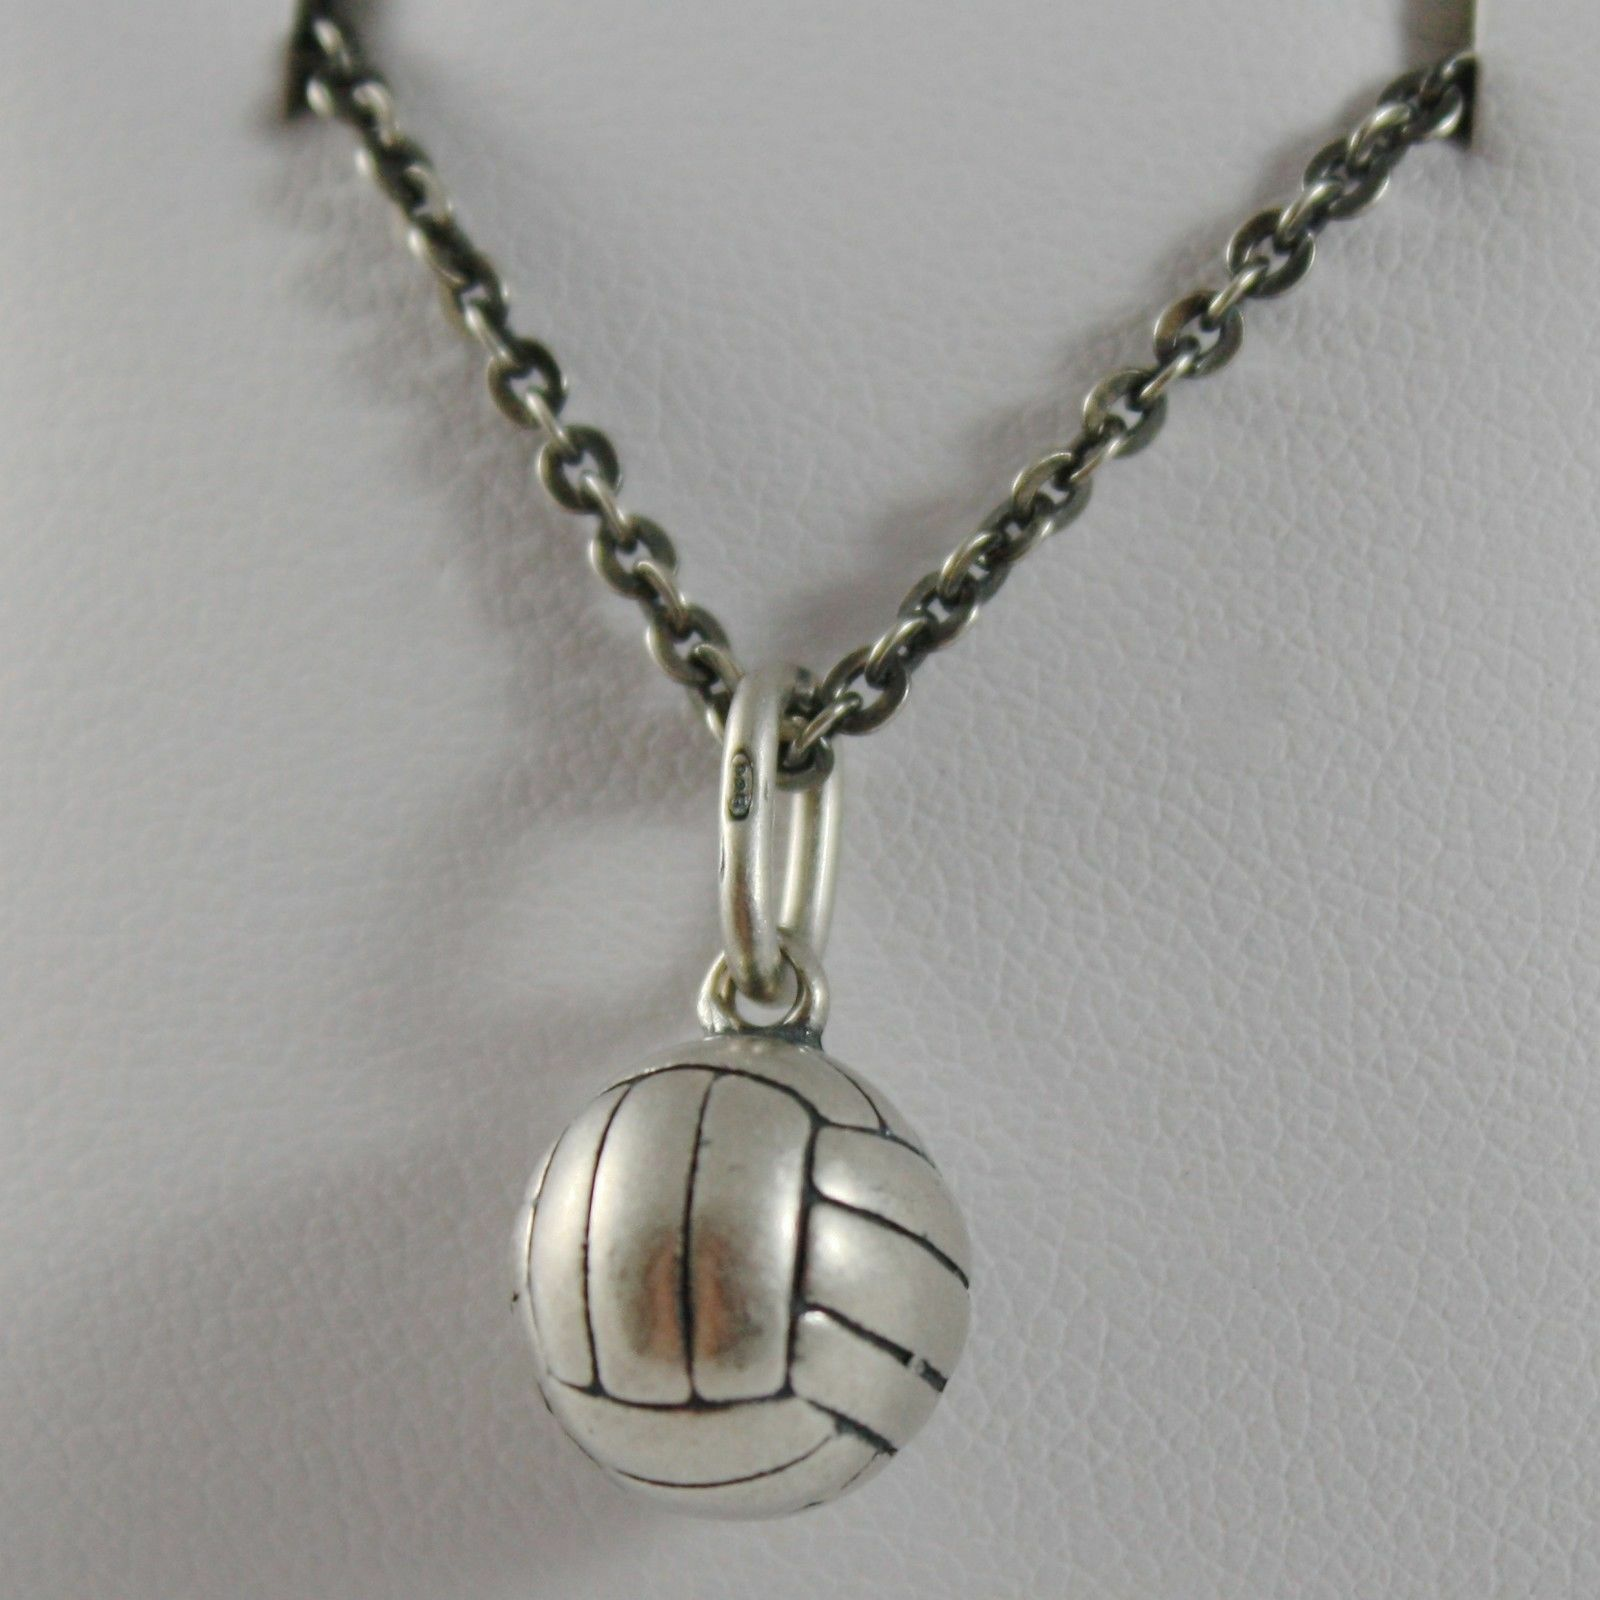 Silver Necklace 925 Burnished Pendant to Ball from Volleyball Made in Italy